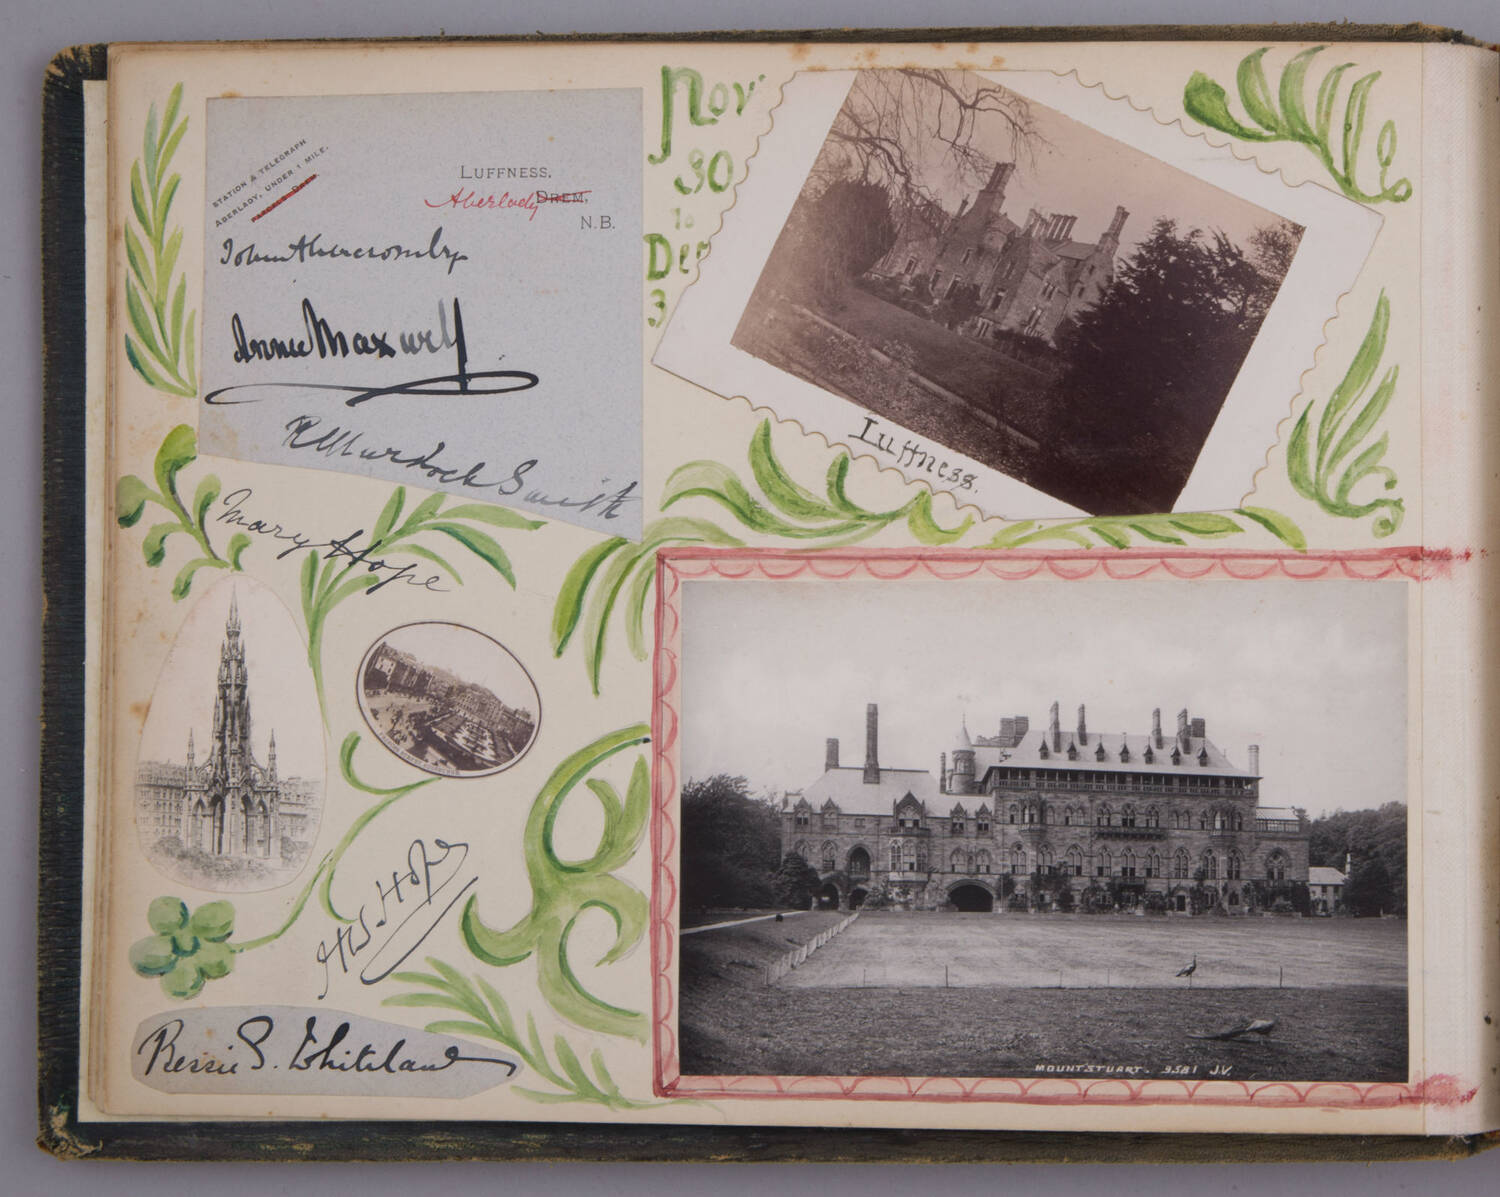 A single page in a scrapbook album. In the bottom left corner of the page are two oval photographs, showing the Walter Scott Monument and Princes Street Garden, Edinburgh. Above this is piece of pale blue notepaper. This has 'LUFFNESS, Aberlady, NB' printed on it in black ink, and three handwritten signatures. In the top right corner of the page is a black and white photograph of Luffness House. Beneath this is a black and white photograph of Mount Stuart, a large stately home on the Isle of Bute. Vines have been painted across the page in green watercolour.